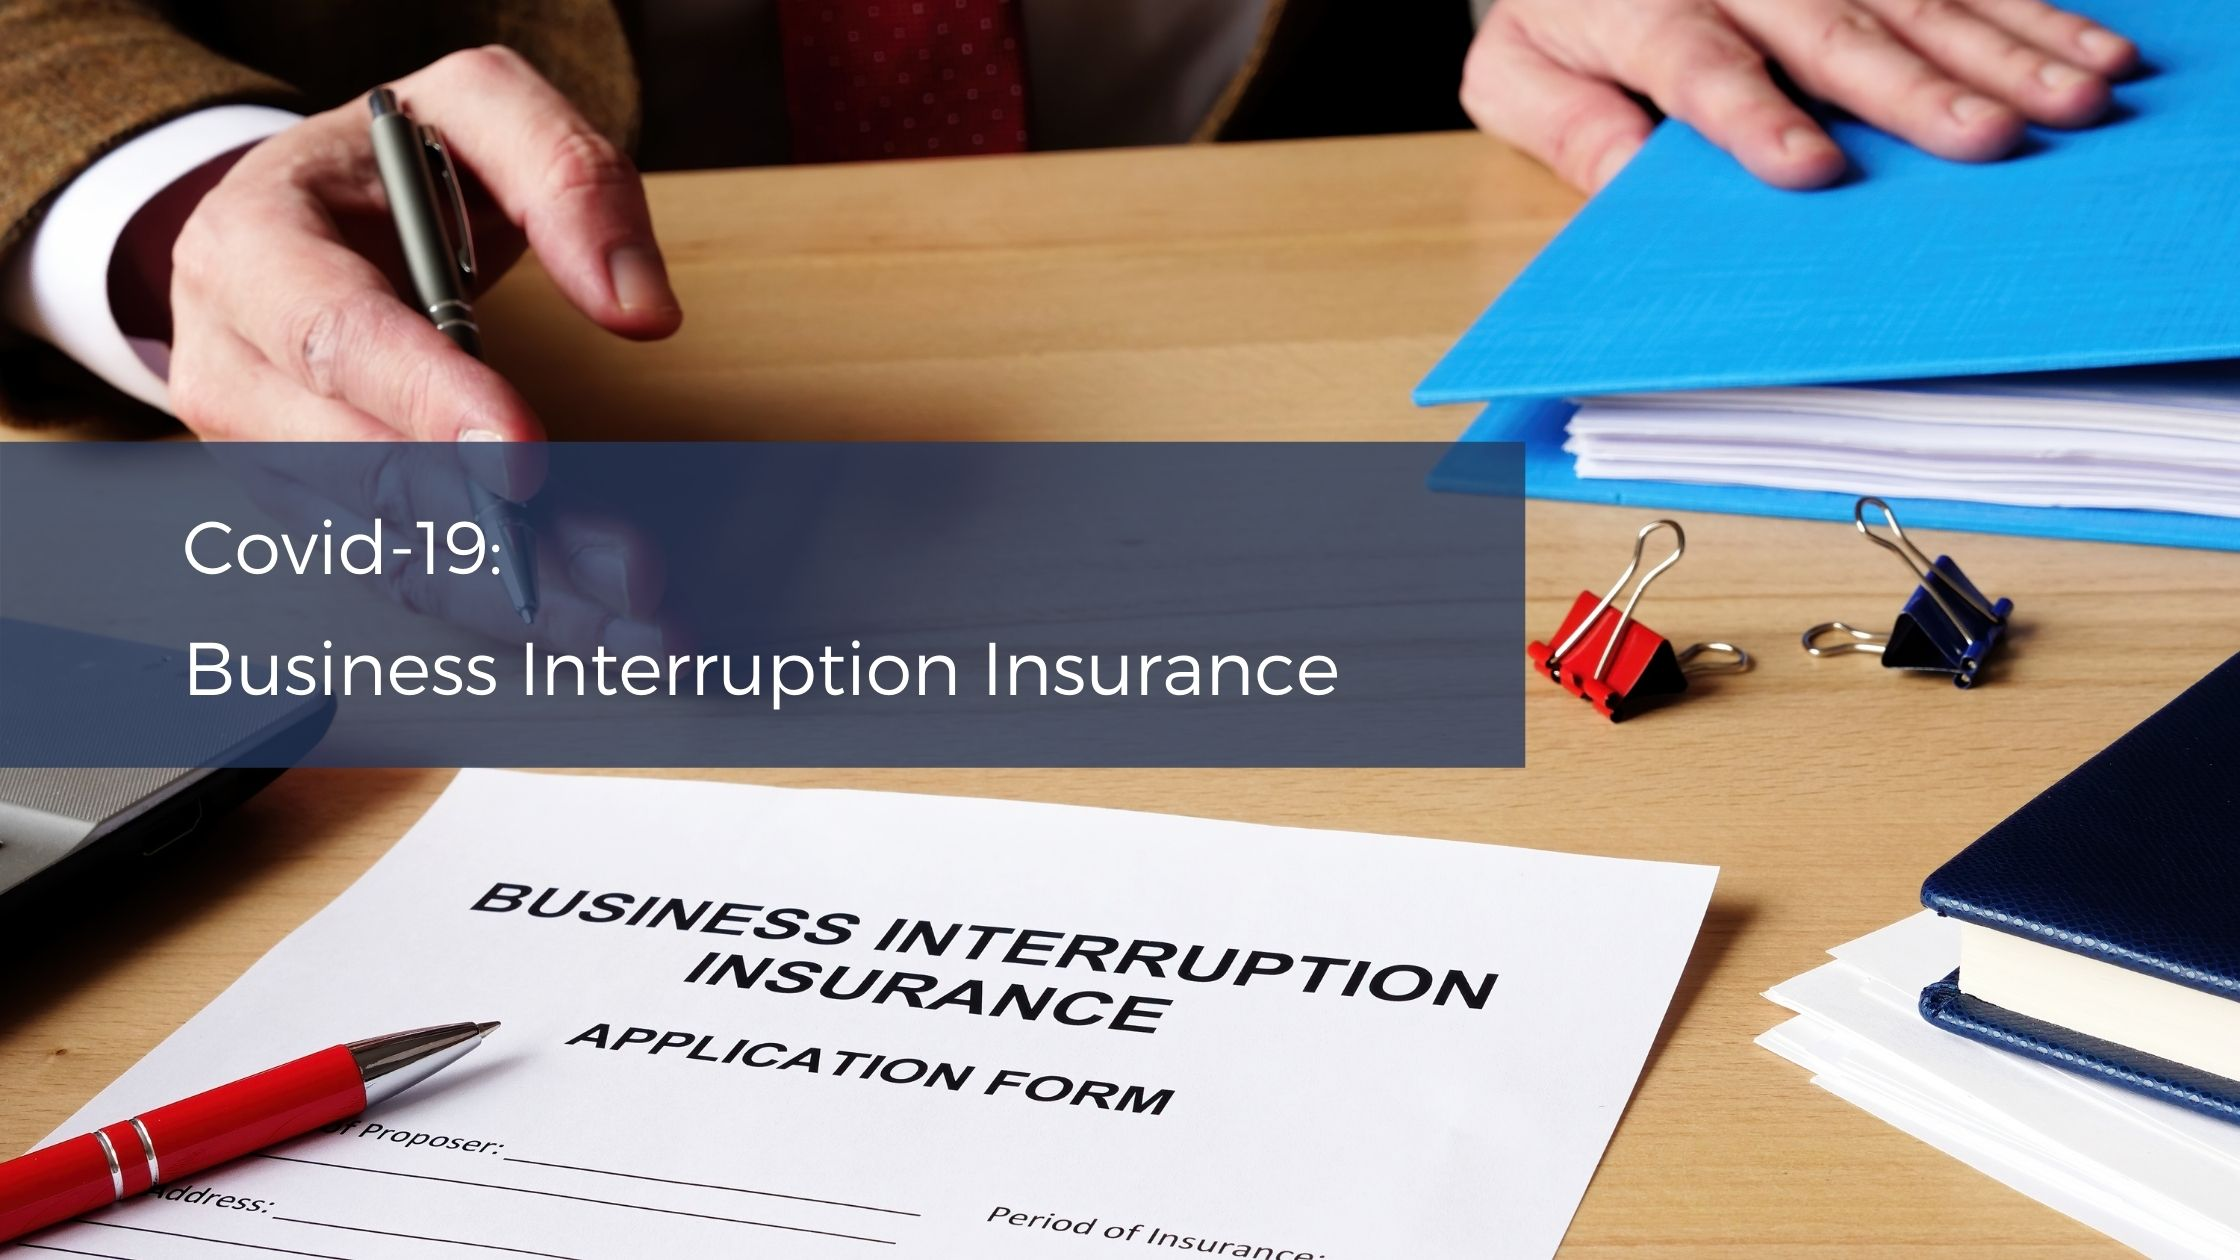 Covid-19 Business Interruption Insurance